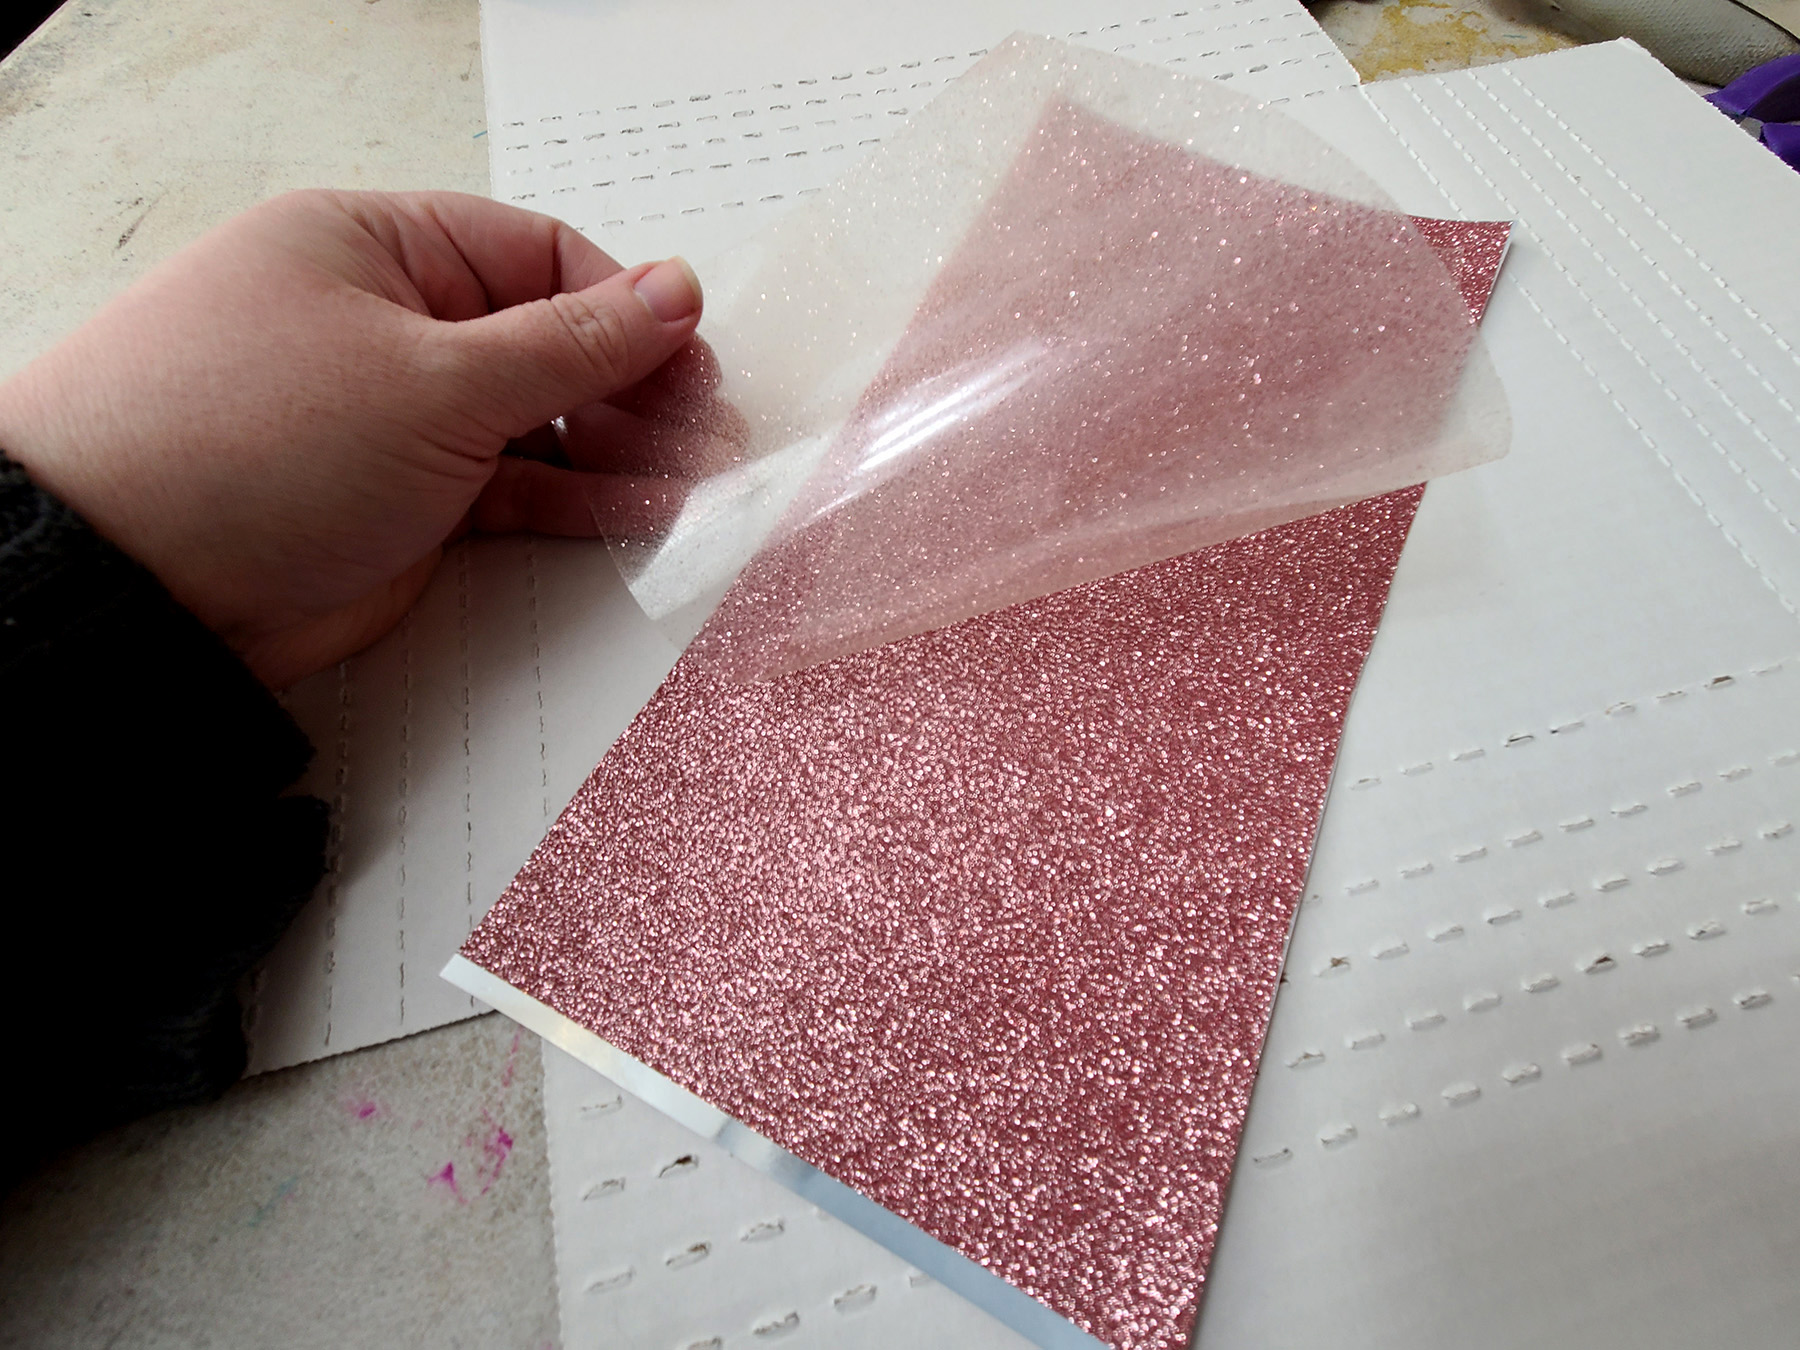 A hand peels a clear plastic layer off the surface of a piece of pink glitter vinyl.